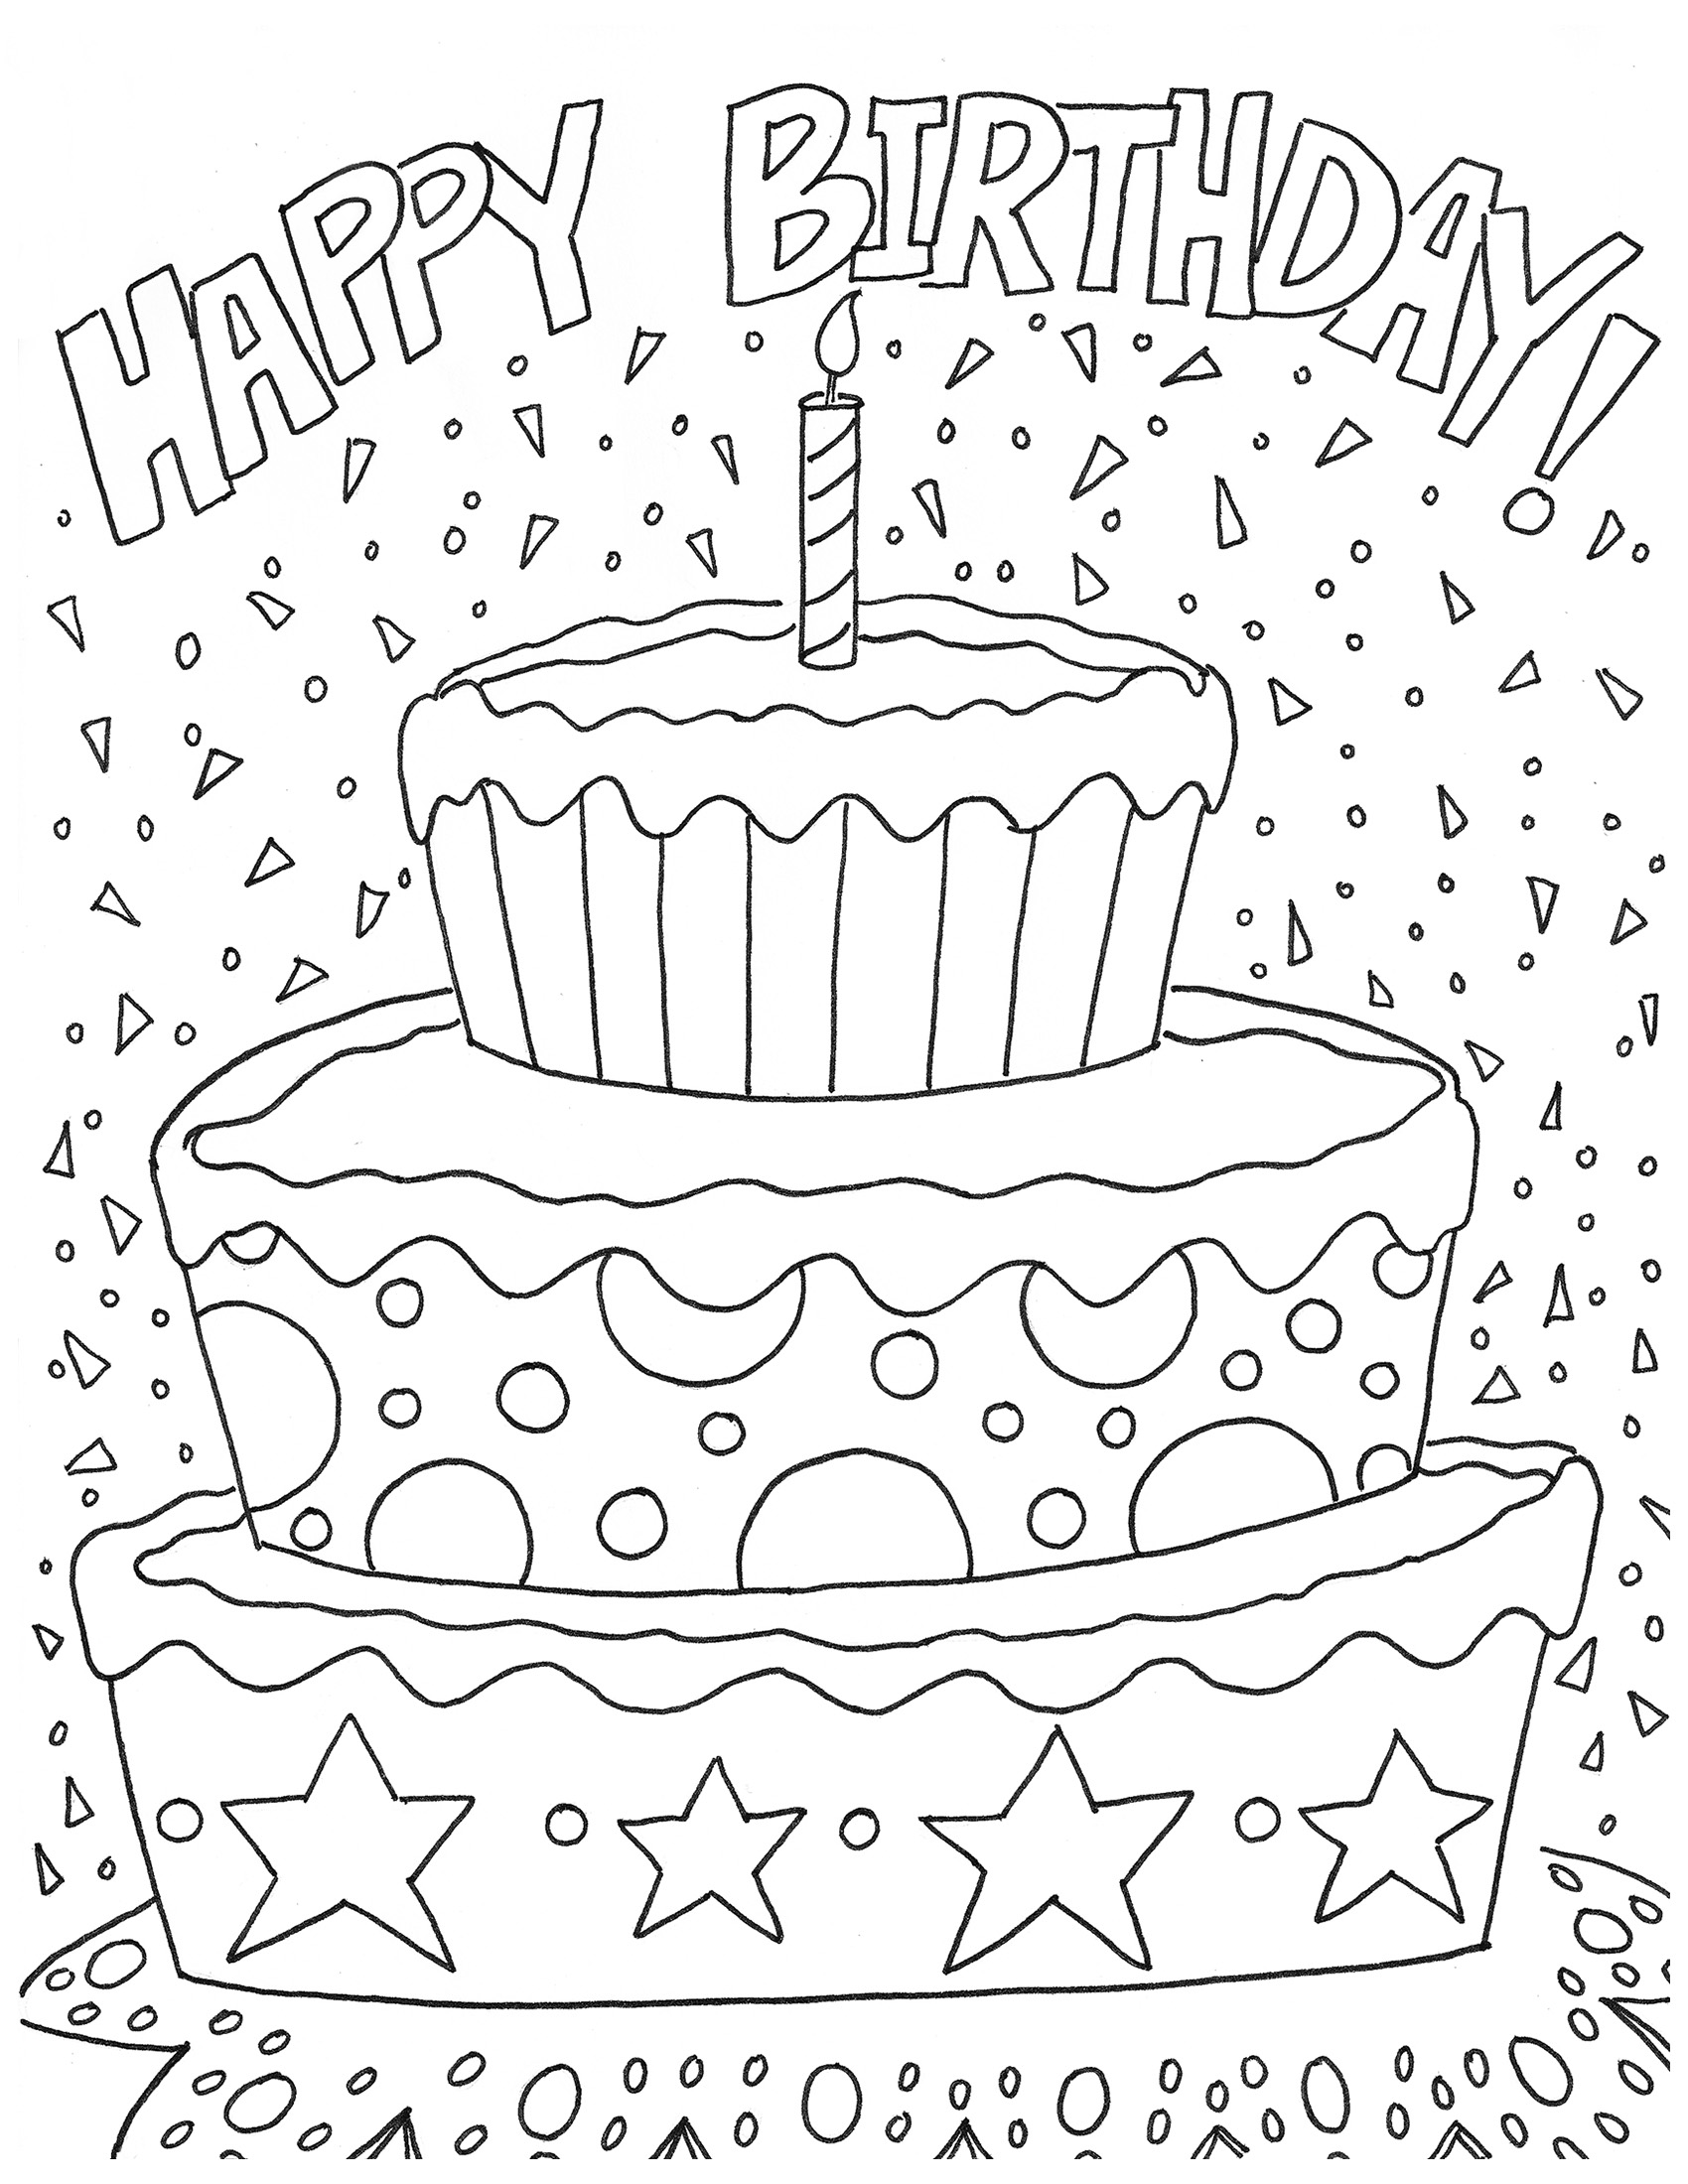 coloring pages brithday - photo#1